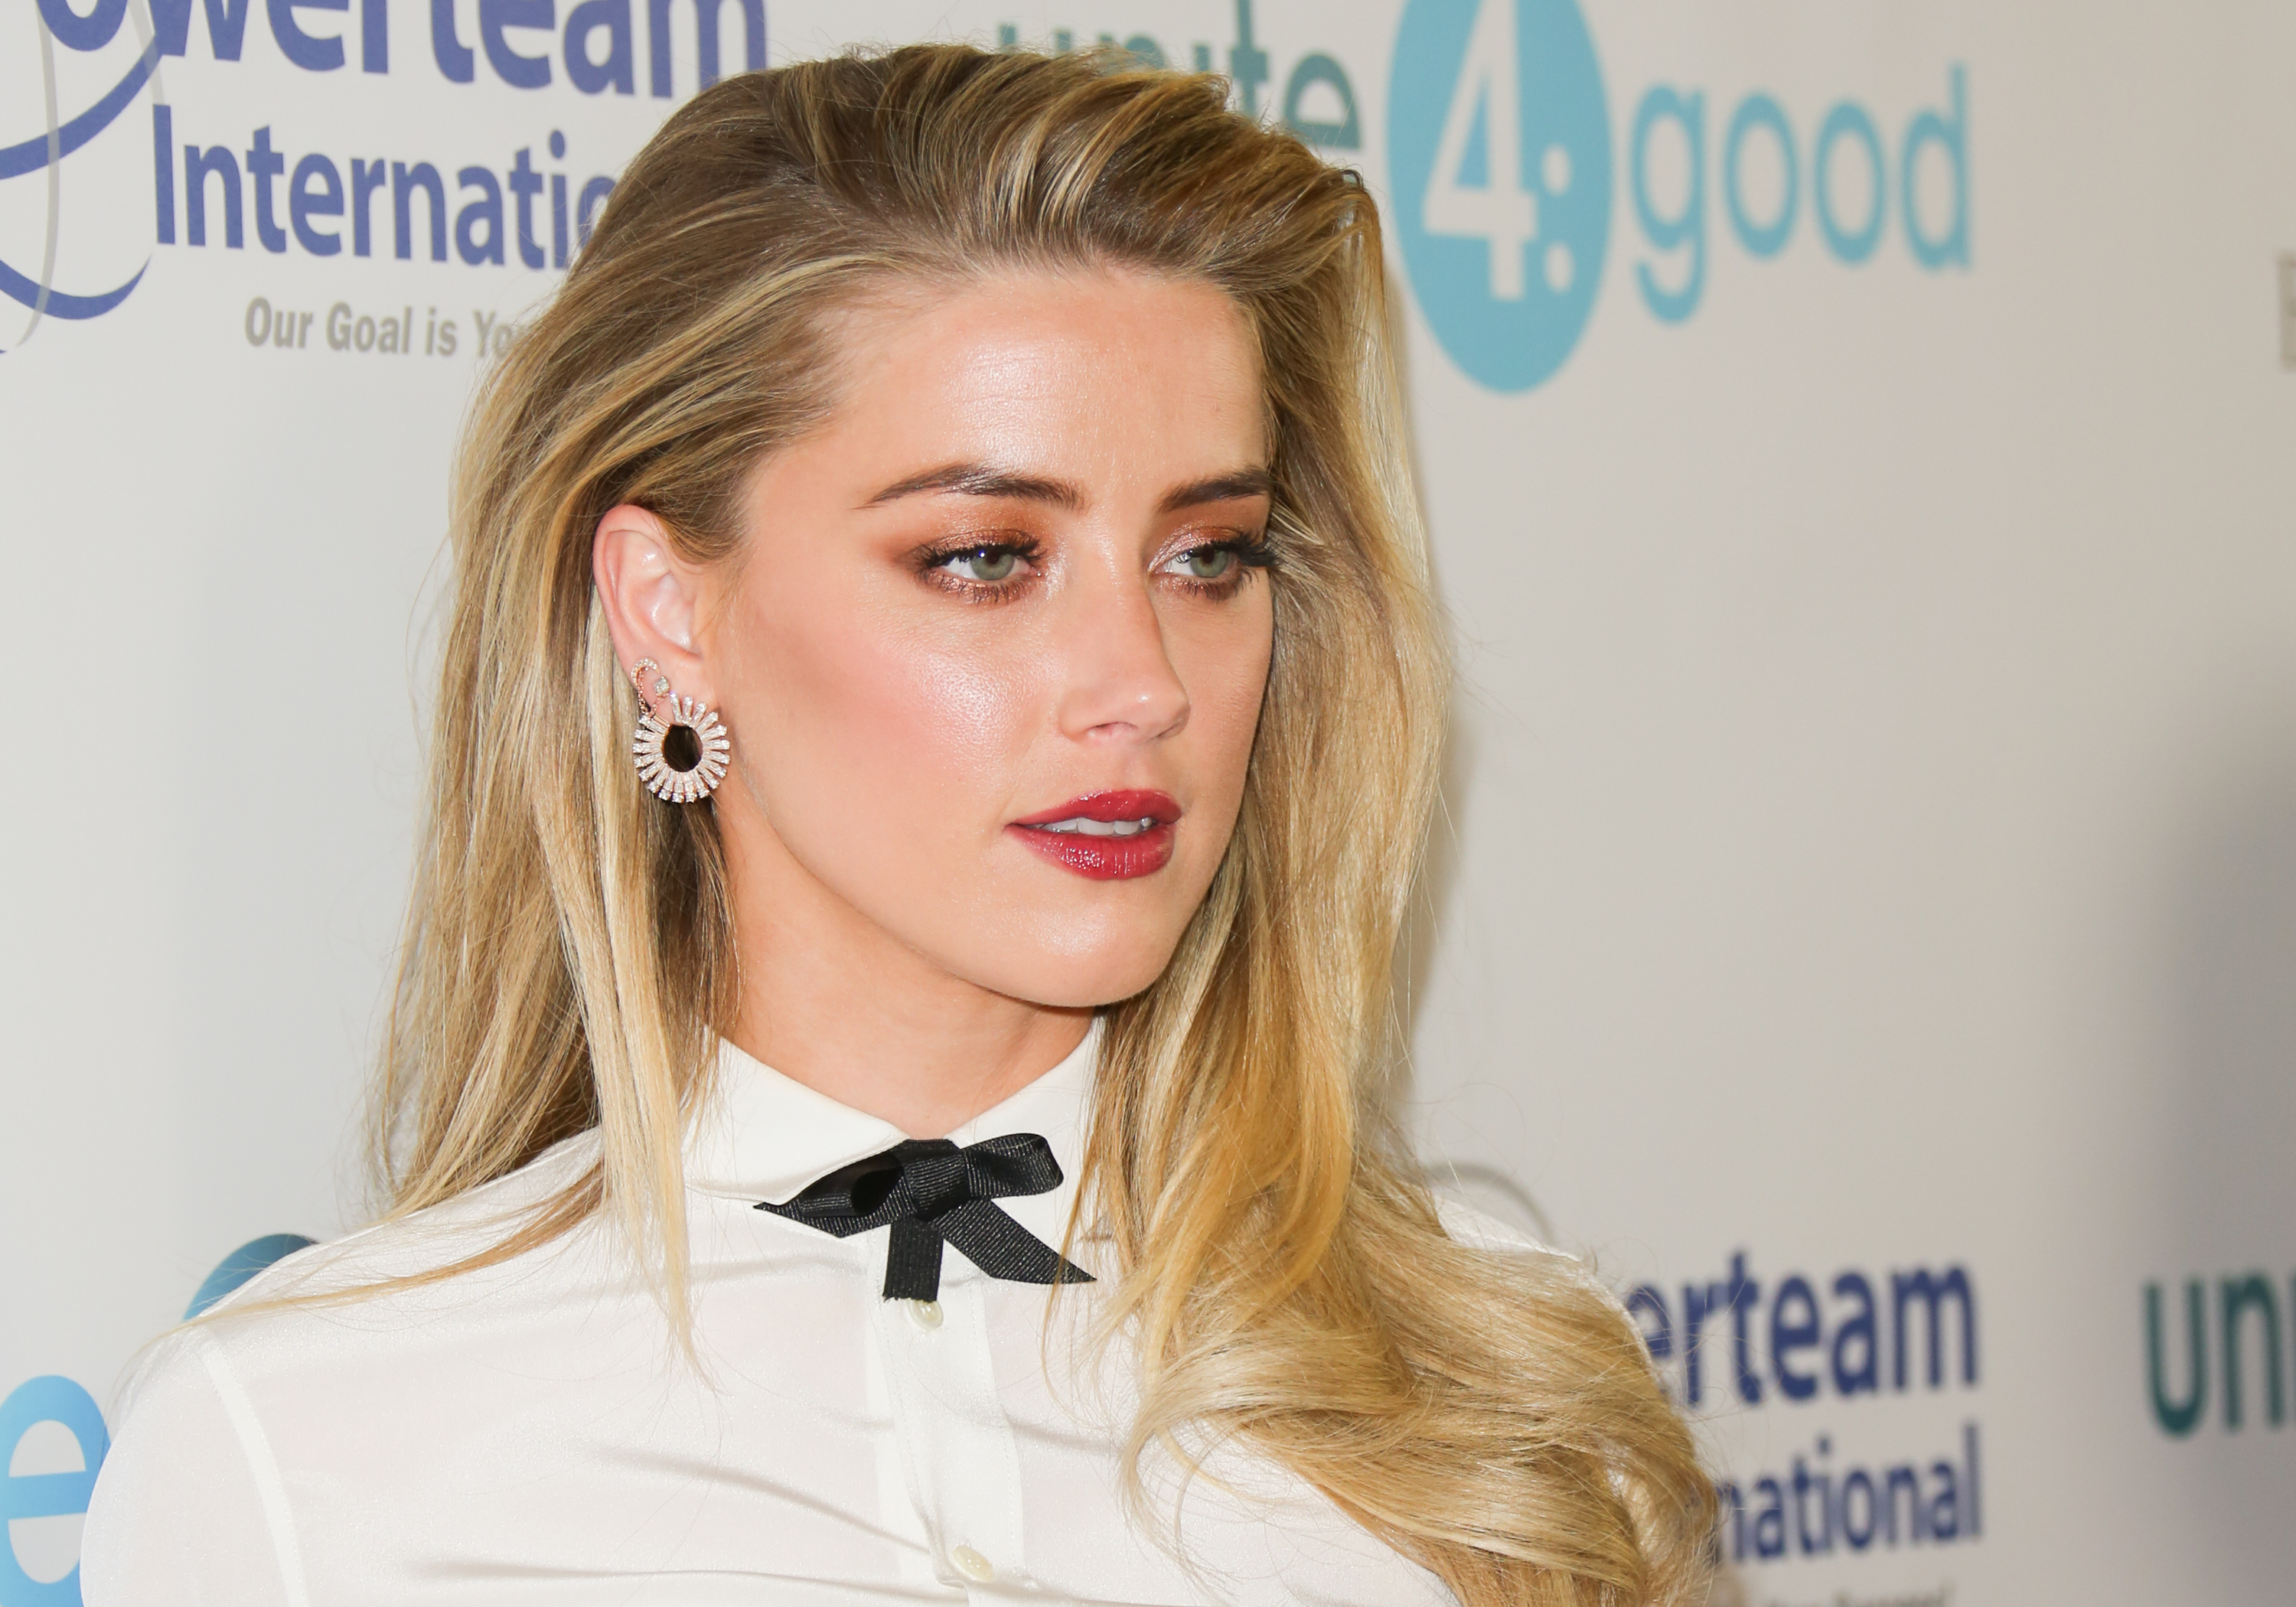 """Amber Heard just confirmed her romance with tech billionaire Elon Musk in a """"cheeky"""" Instagram pic"""